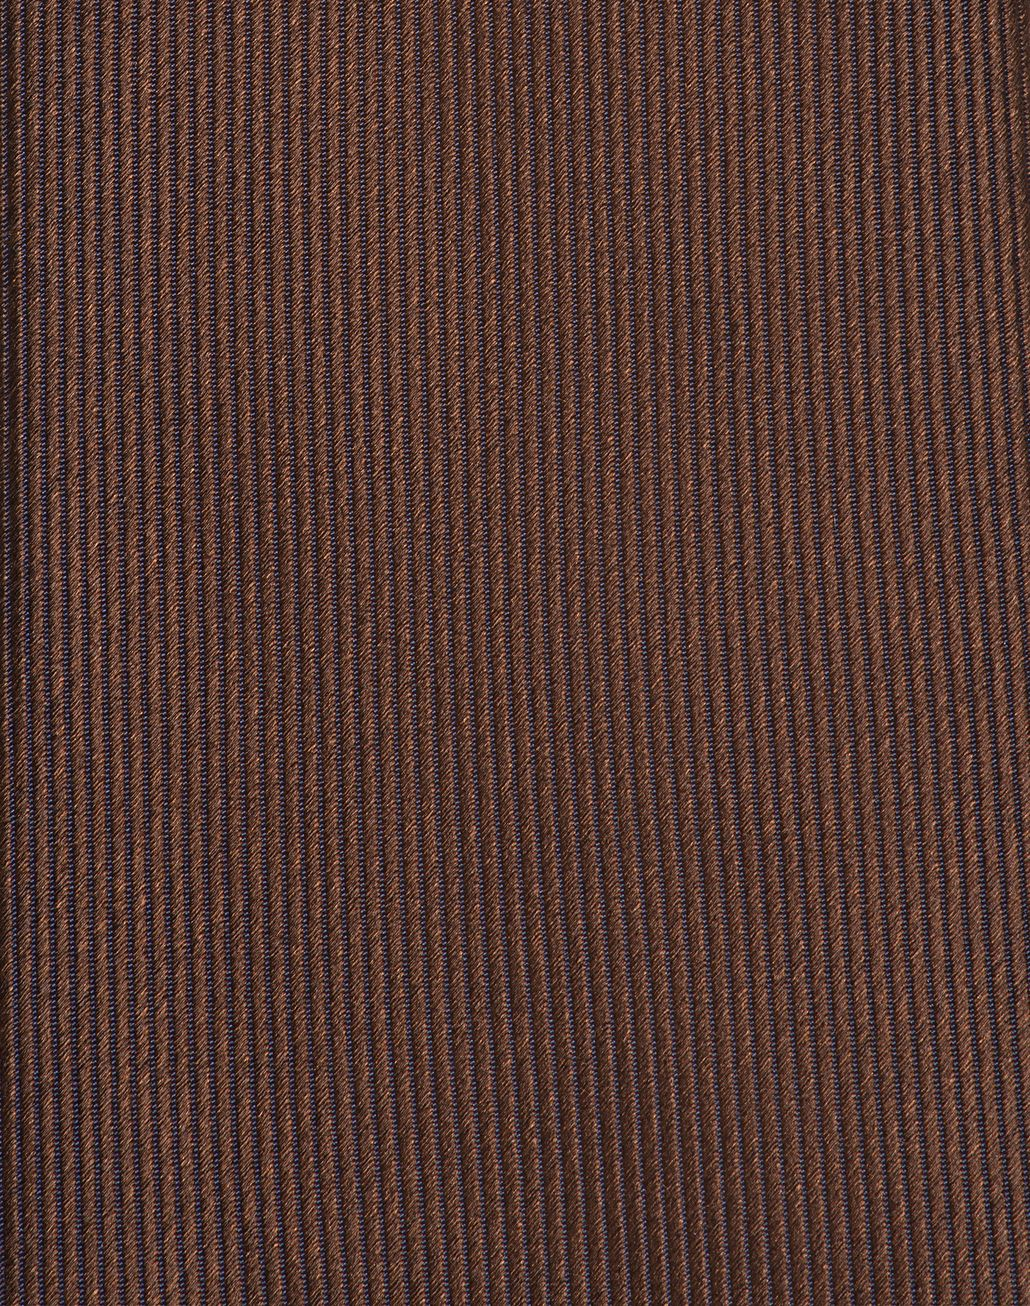 BRIONI Brown Pinstriped Tie Tie & Pocket Square U d